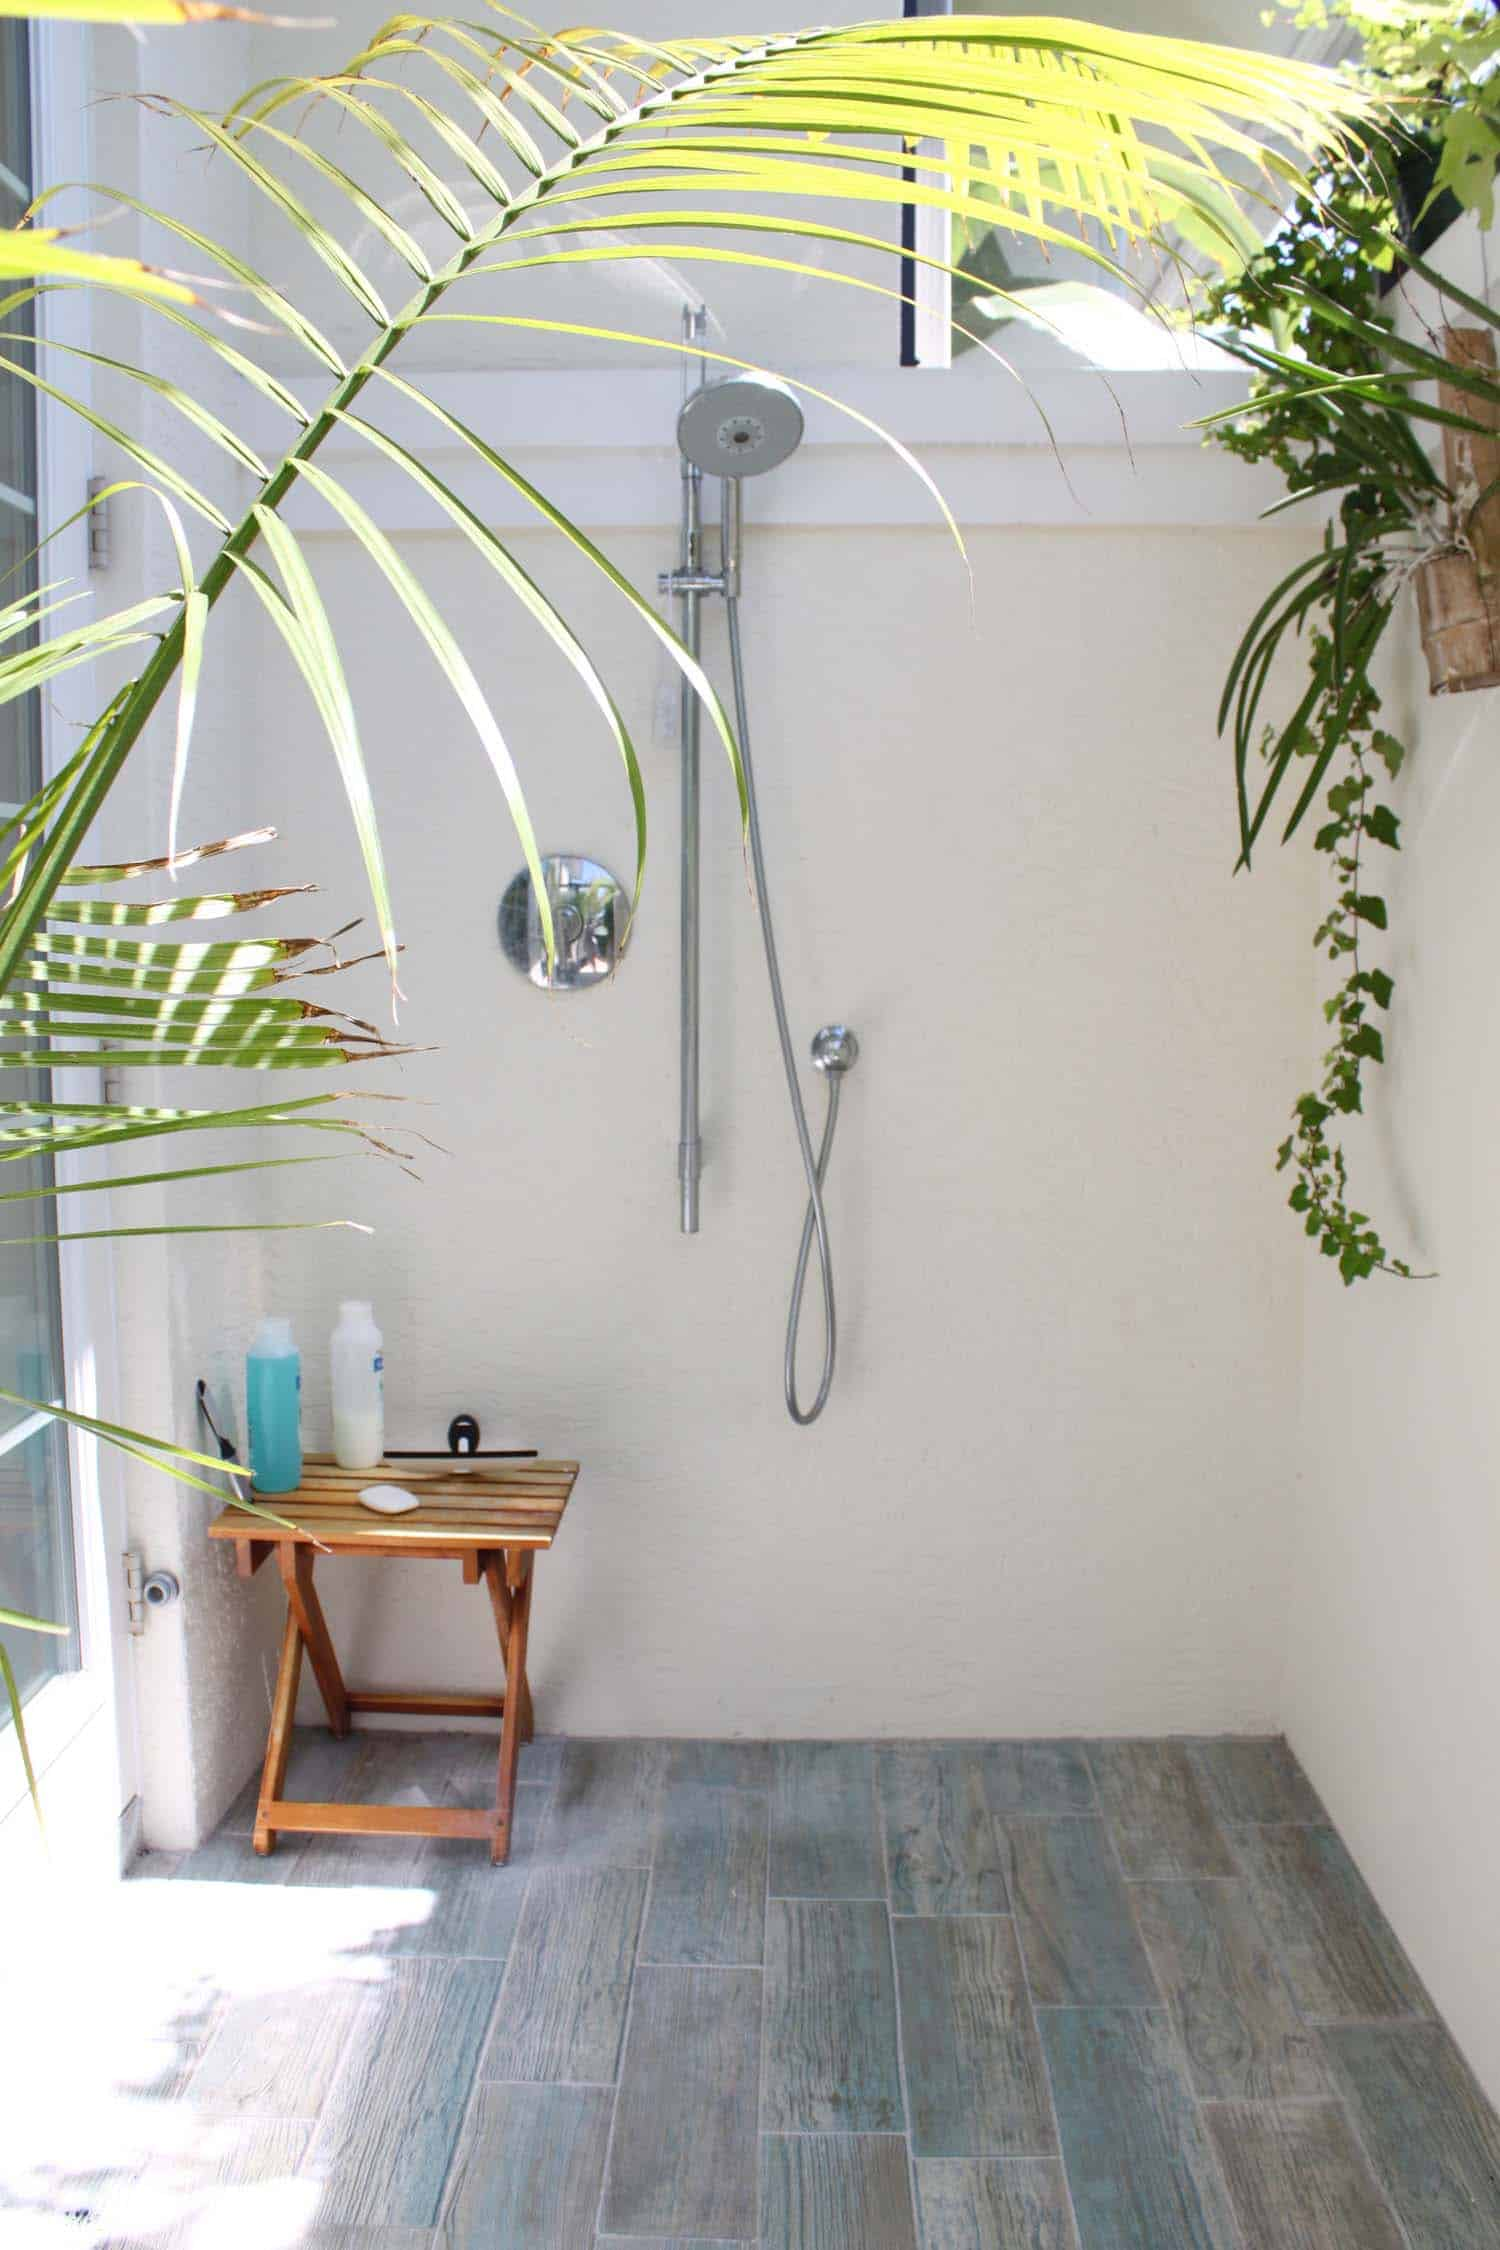 Outdoor Shower Design Ideas-26-1 Kindesign